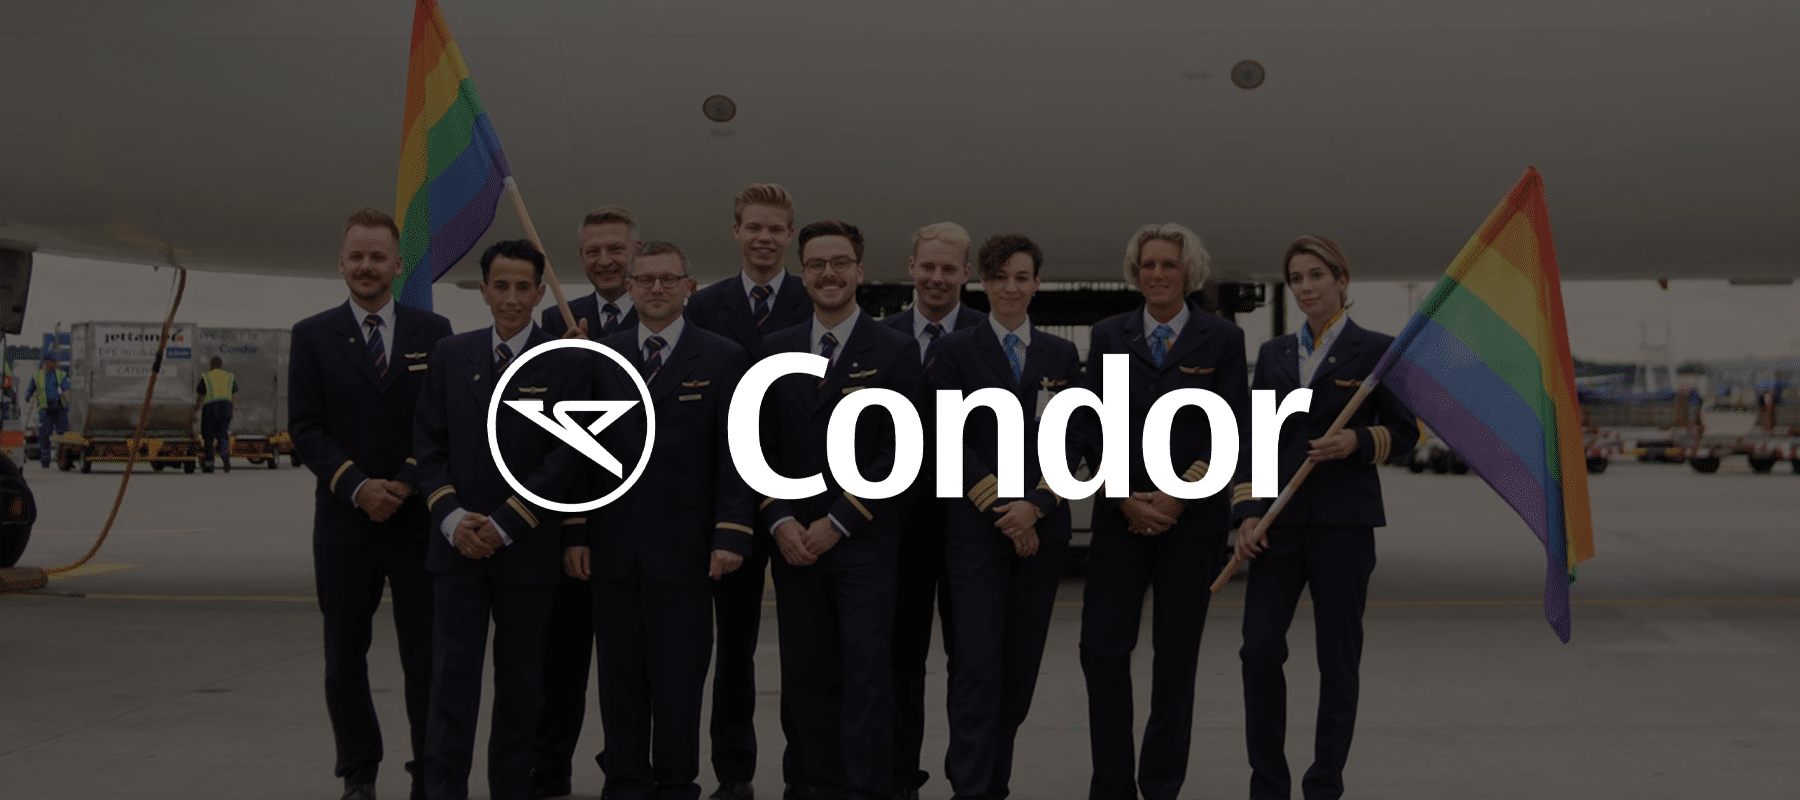 The Condor airlines logo superimposed over employees holding LGBTQ pride flags